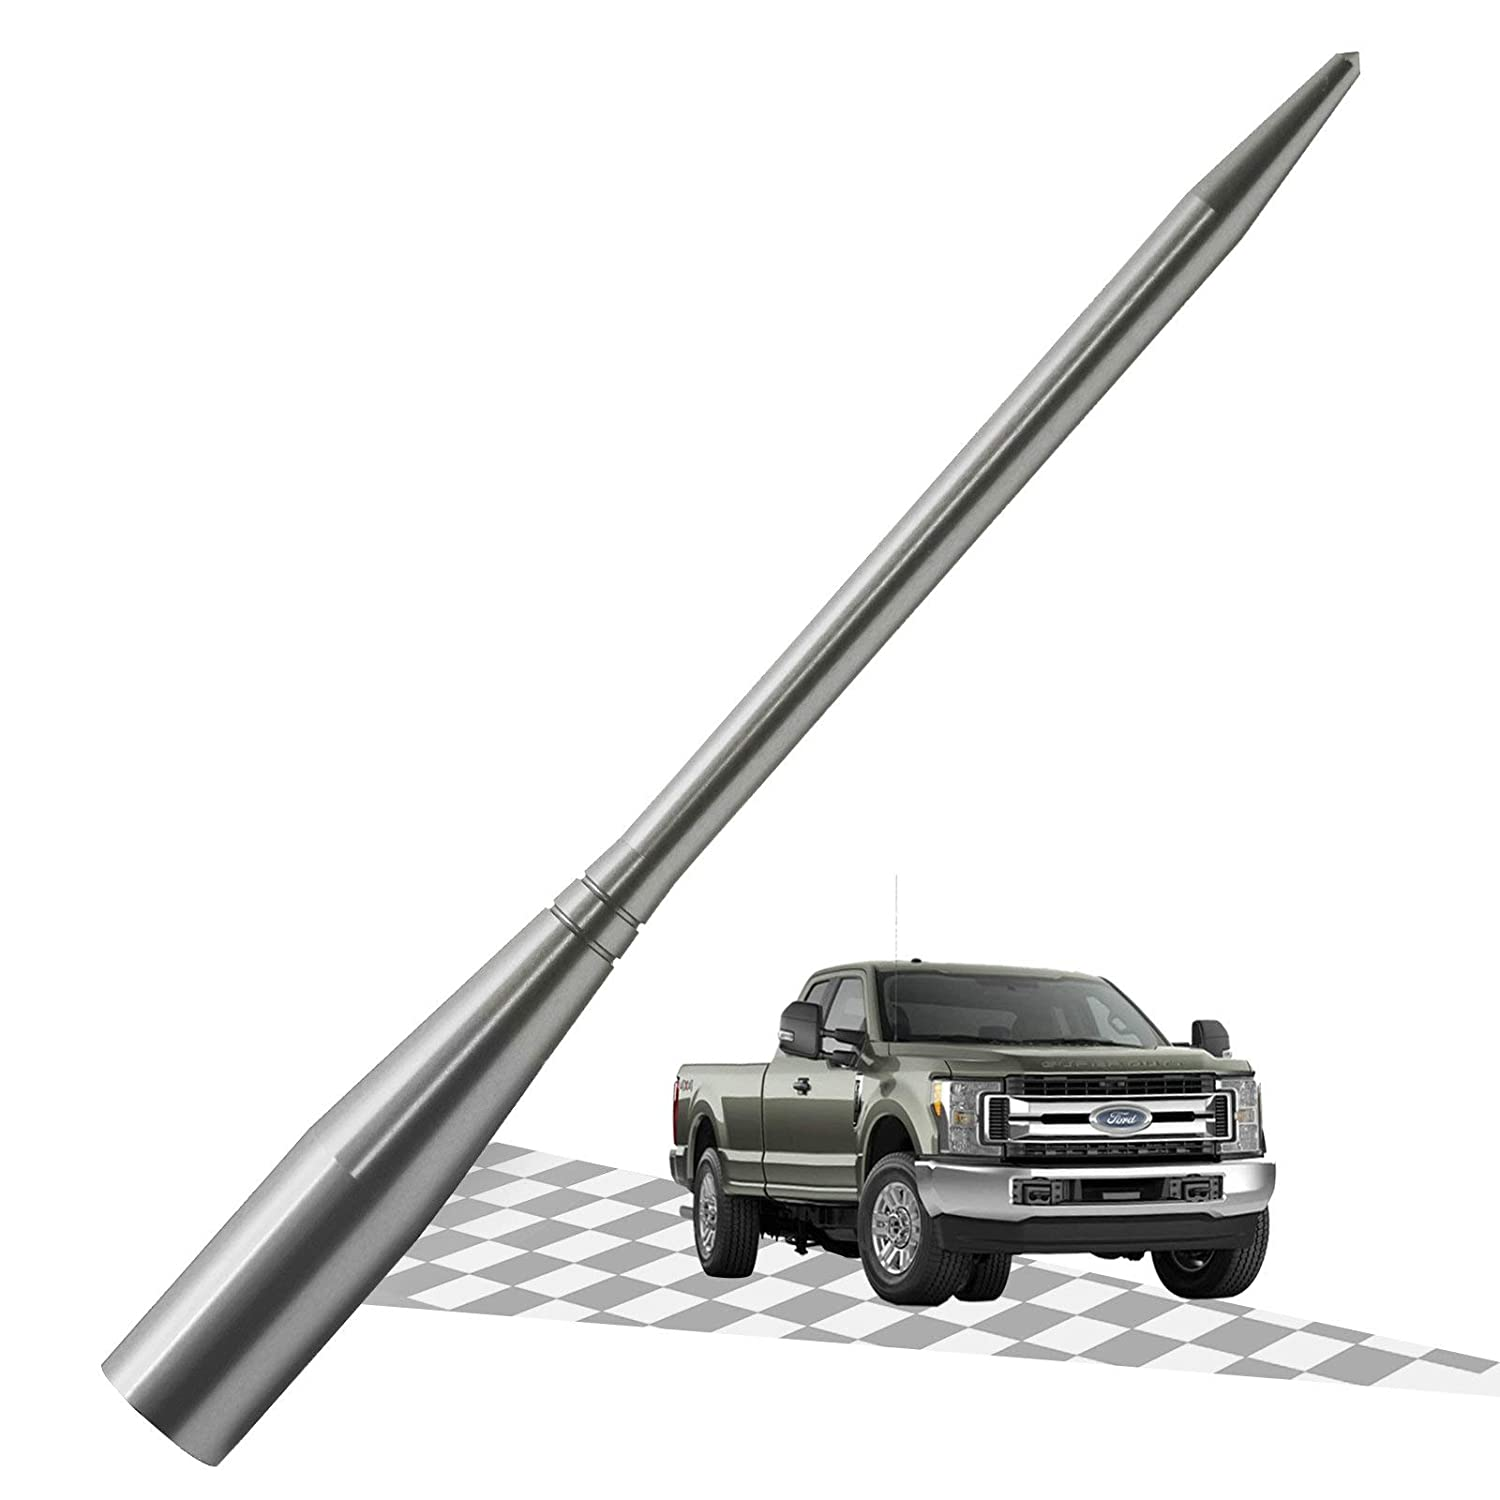 Silver/Titanium 6.75 Inches Optimized AM//FM Reception with Tough Material Elitezip Antenna Compatible with Ford F-250 2009-2018